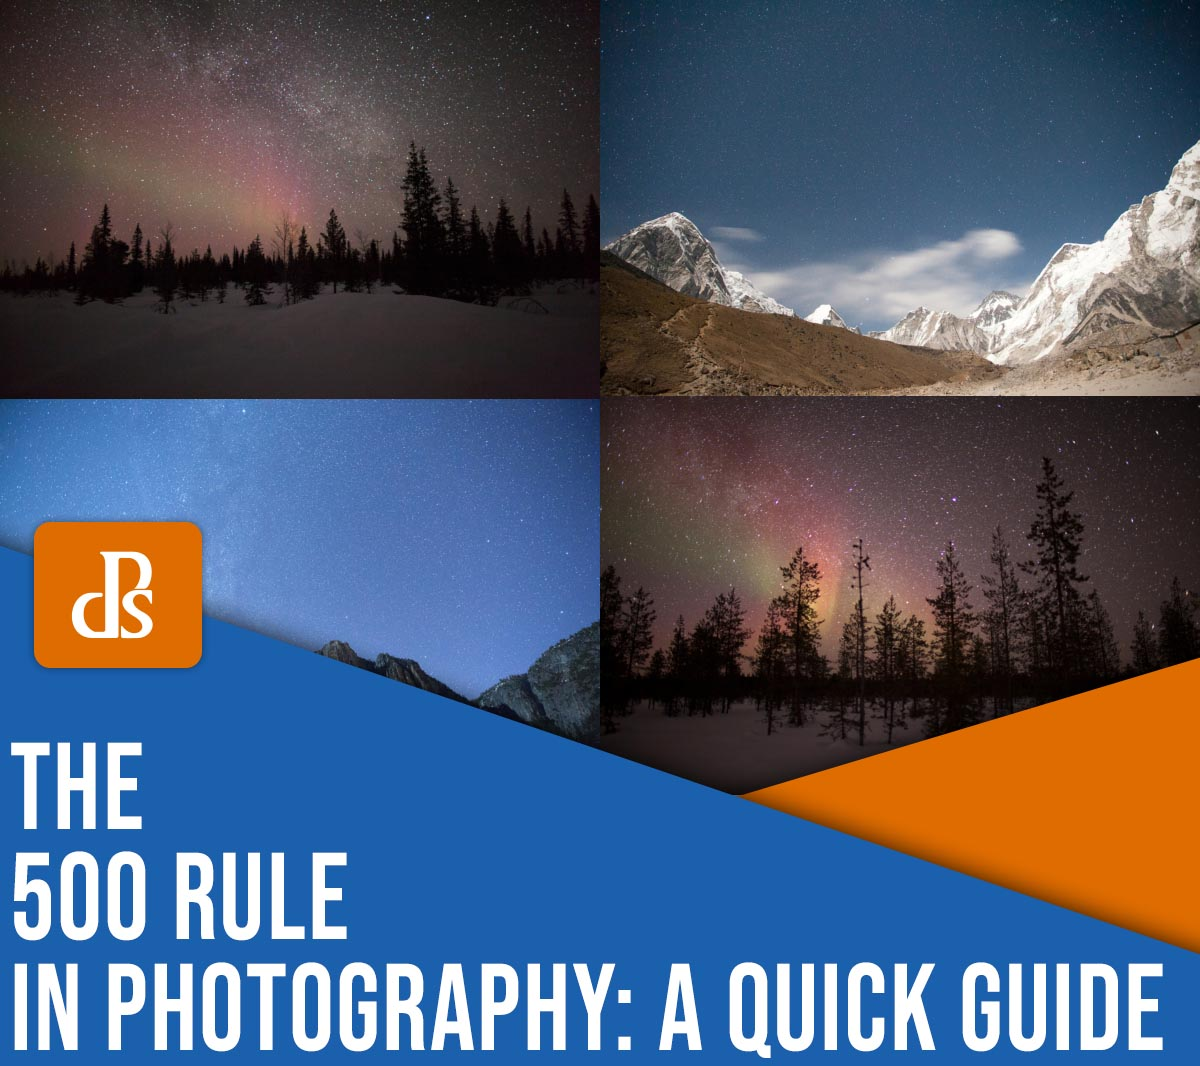 the 500 rule in photography: a quick guide